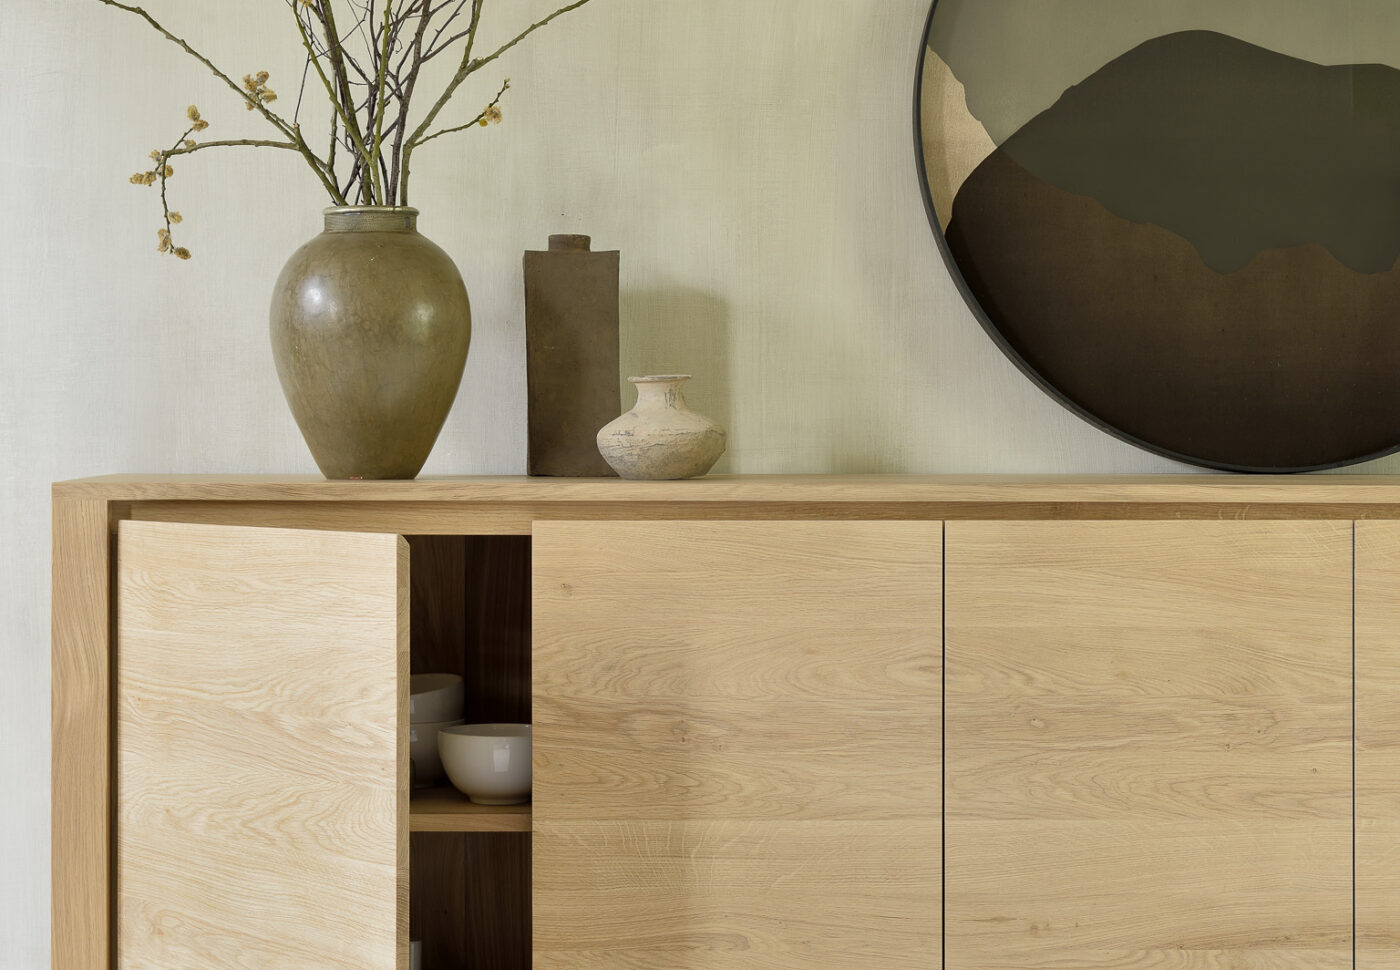 51373 Oak Shadow sideboard 21701 Sand Nomad kilim rug 20909 Graphite Combined Dots glass tray det2 WEB